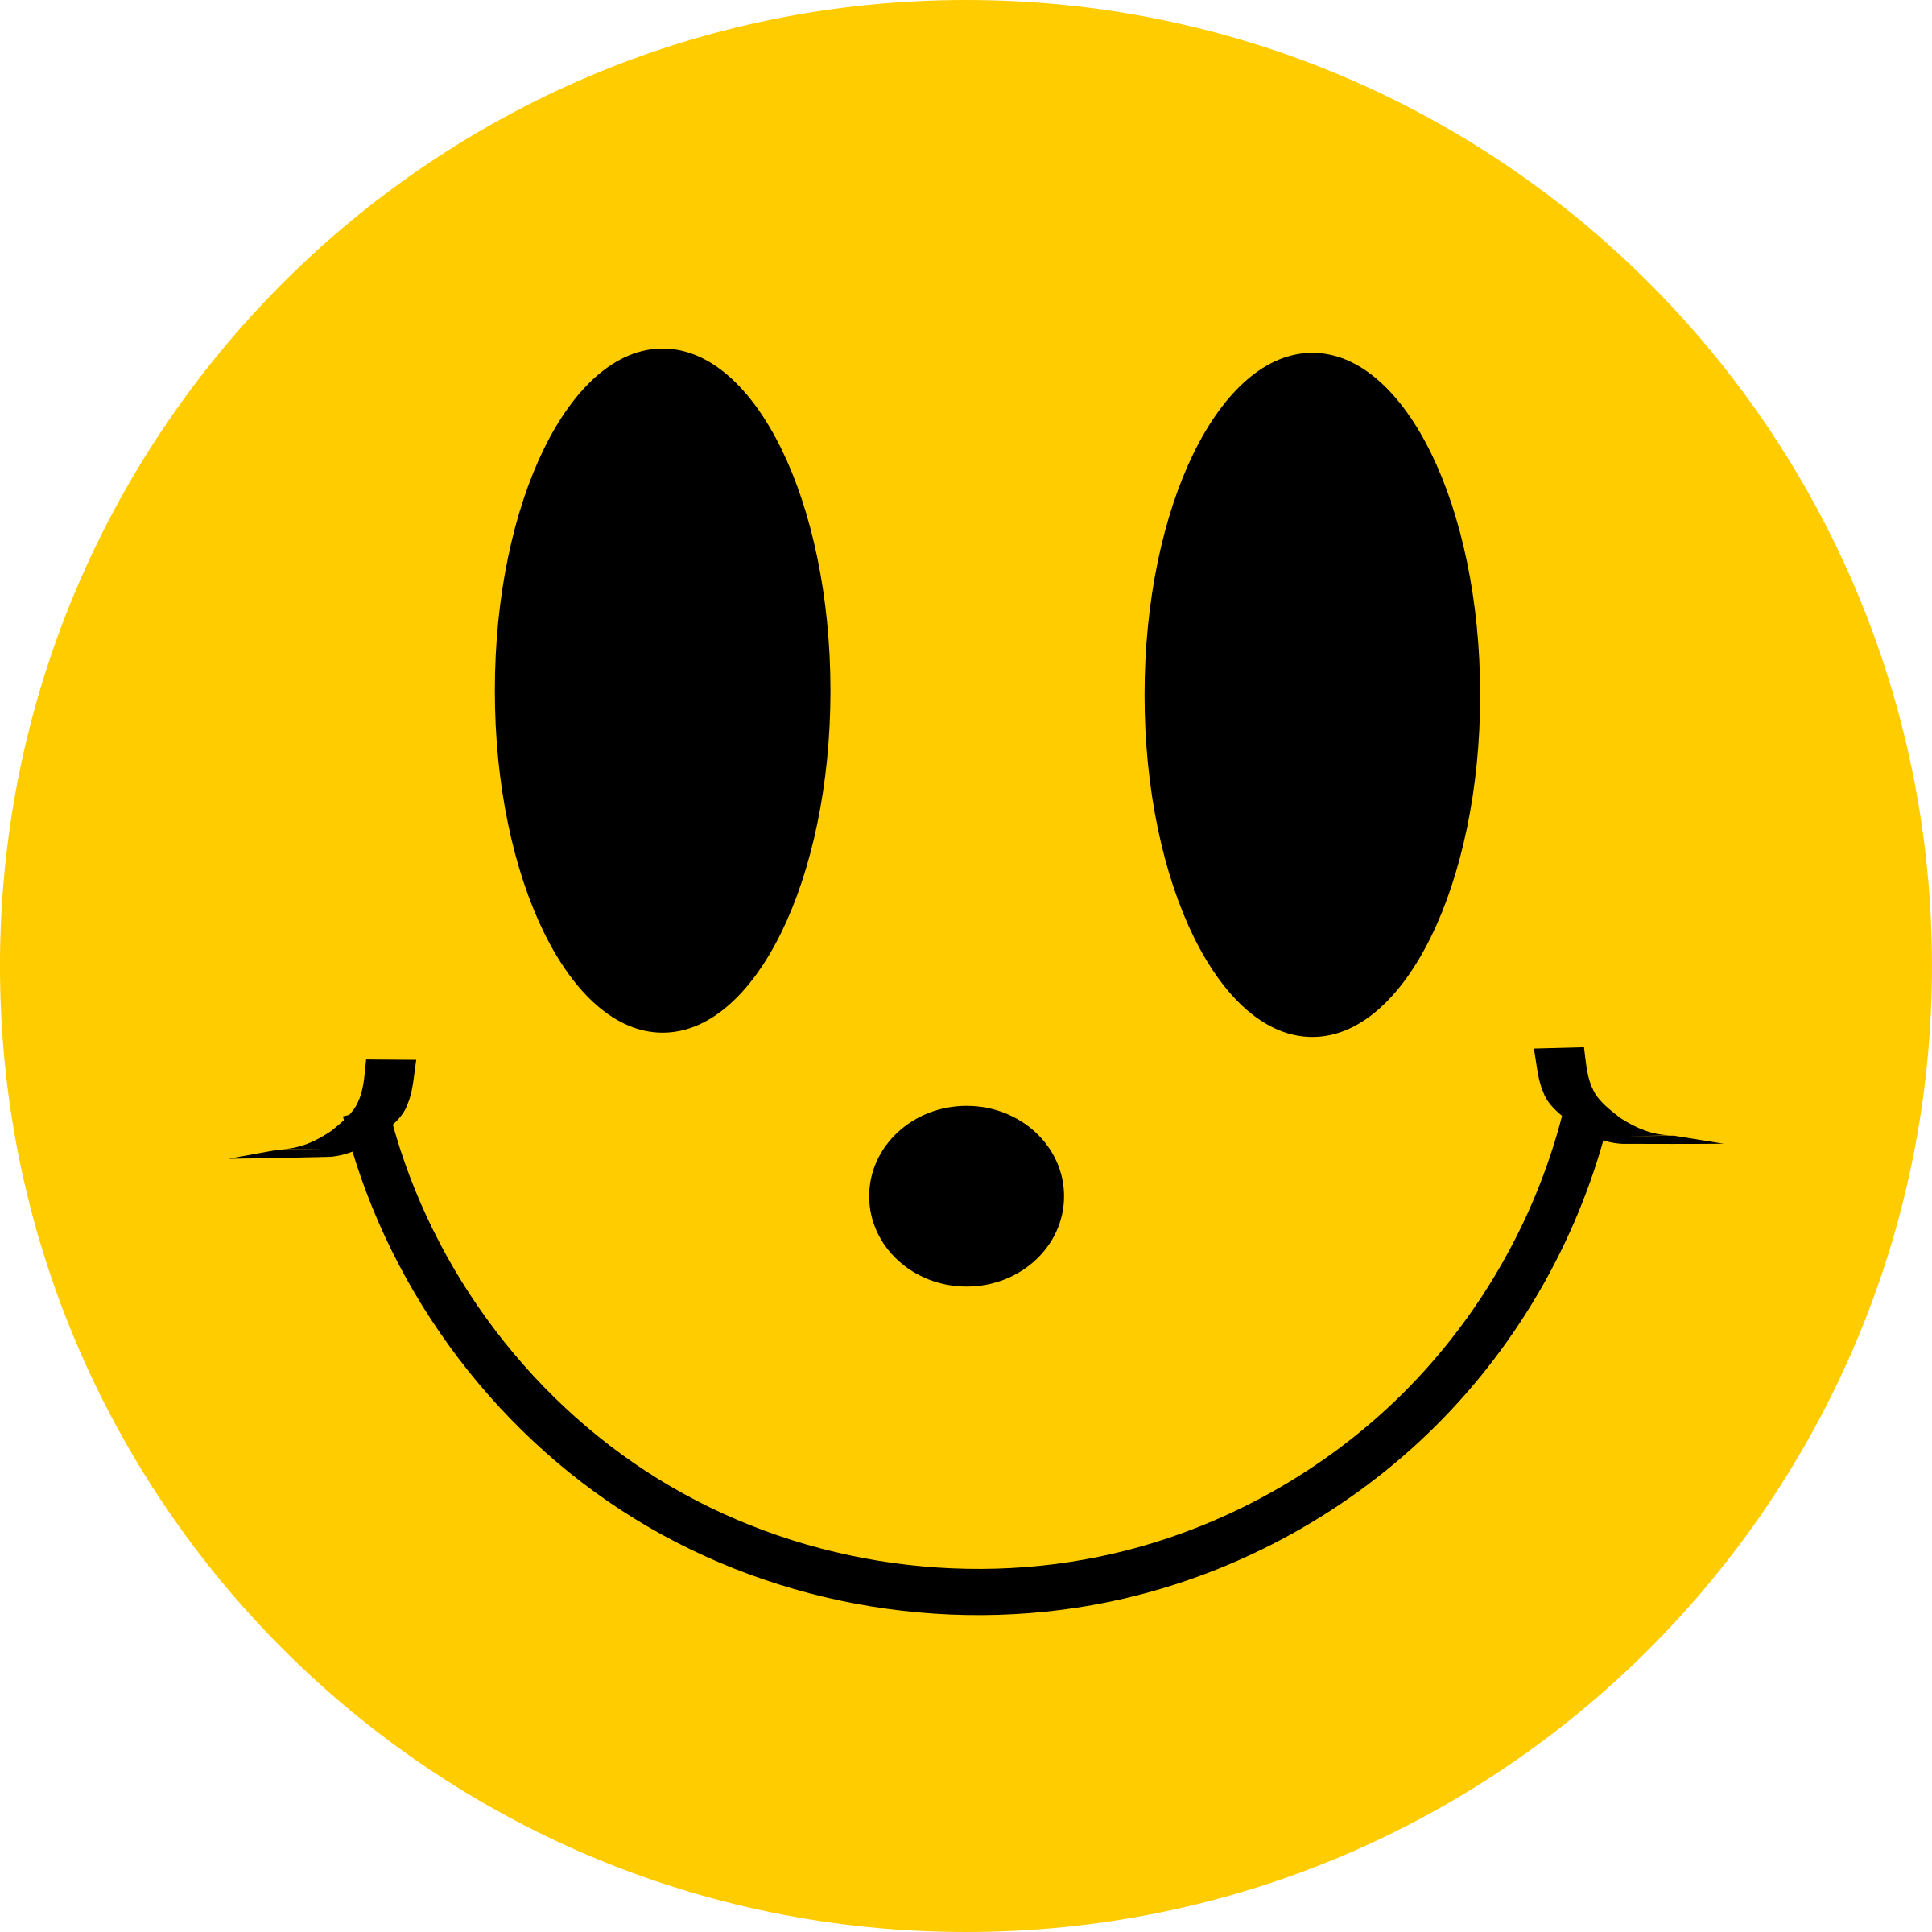 Smile clipart png. Simple flat smiley face